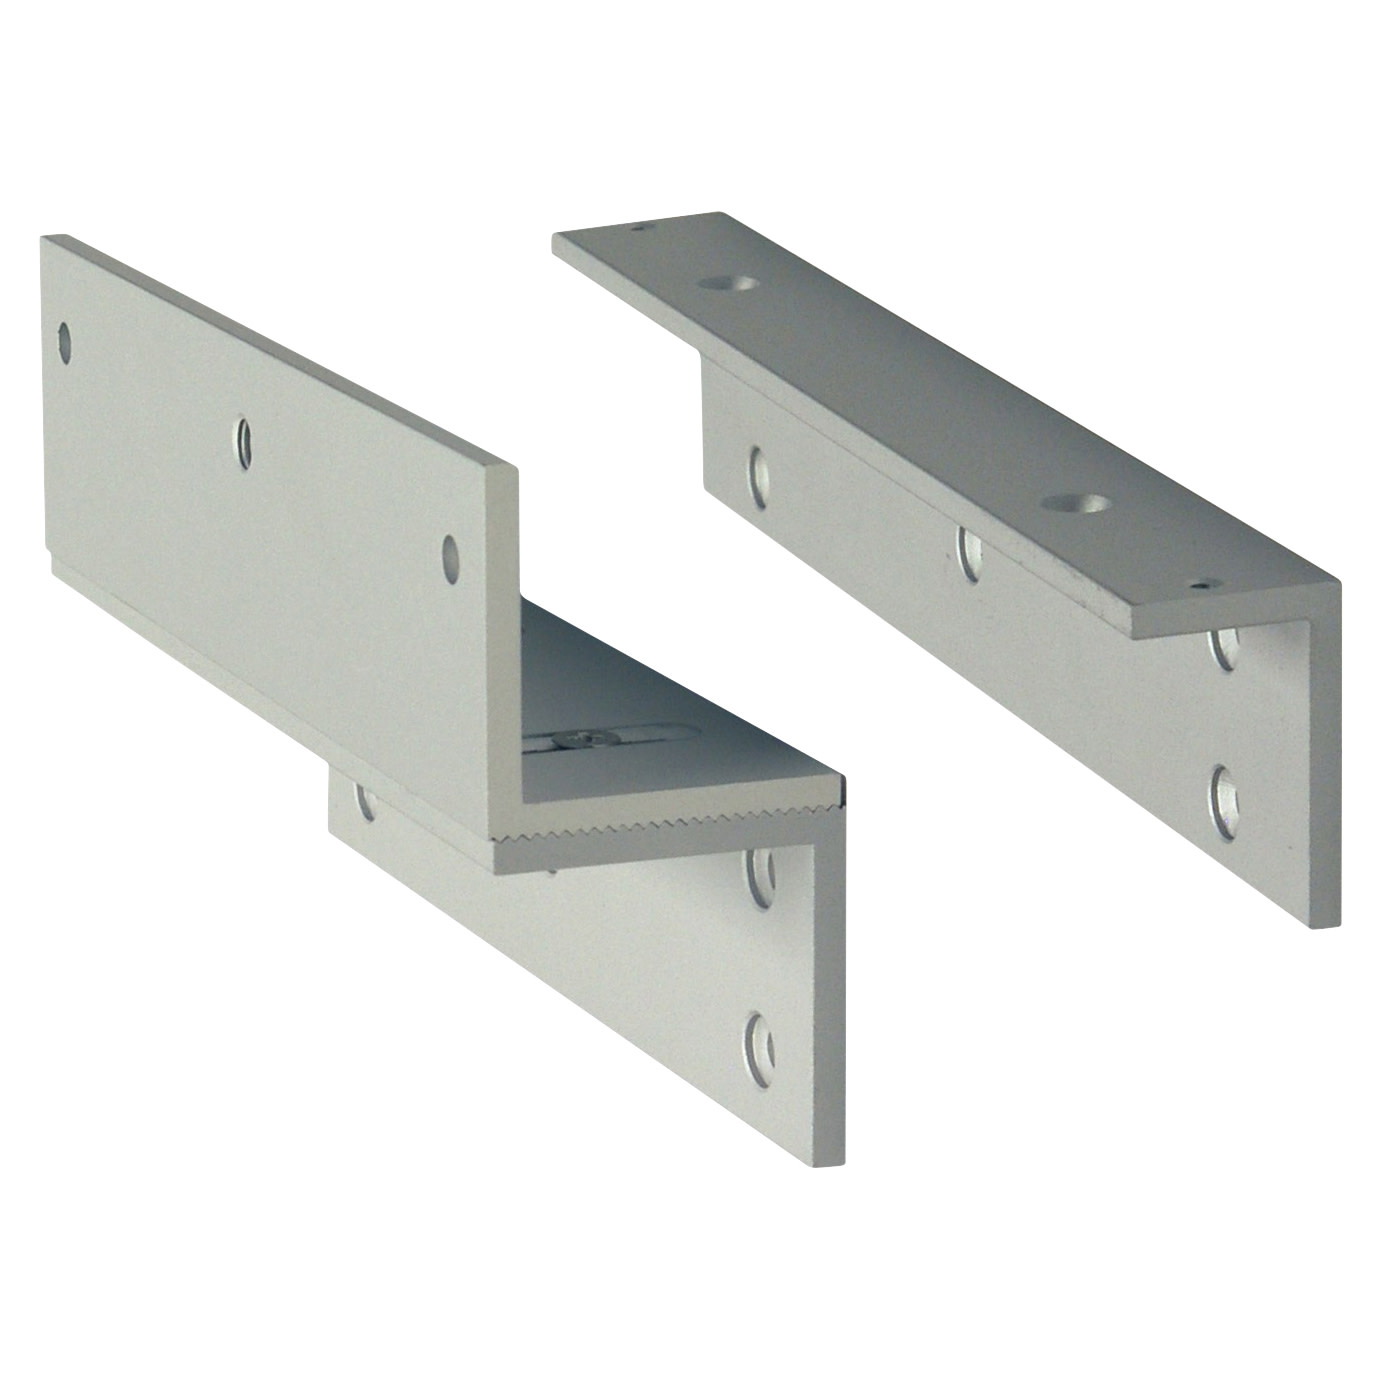 Z and L Bracket - Slimline Magnet)